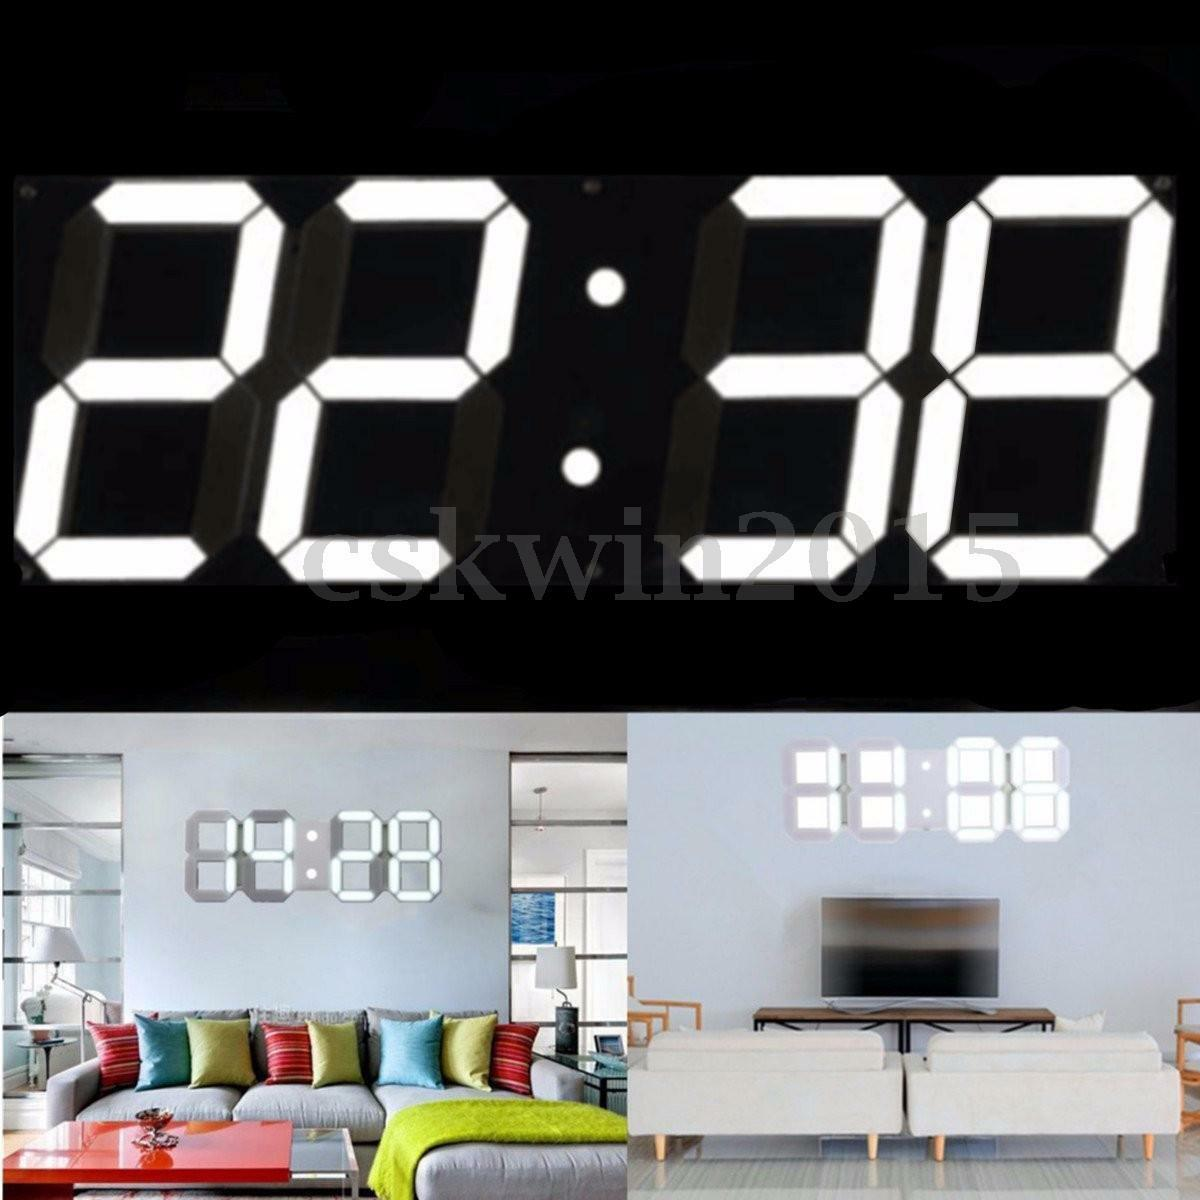 led squelette horloge murale affichage digitale eclairage 24 12 heure 3d display eur 46 89. Black Bedroom Furniture Sets. Home Design Ideas